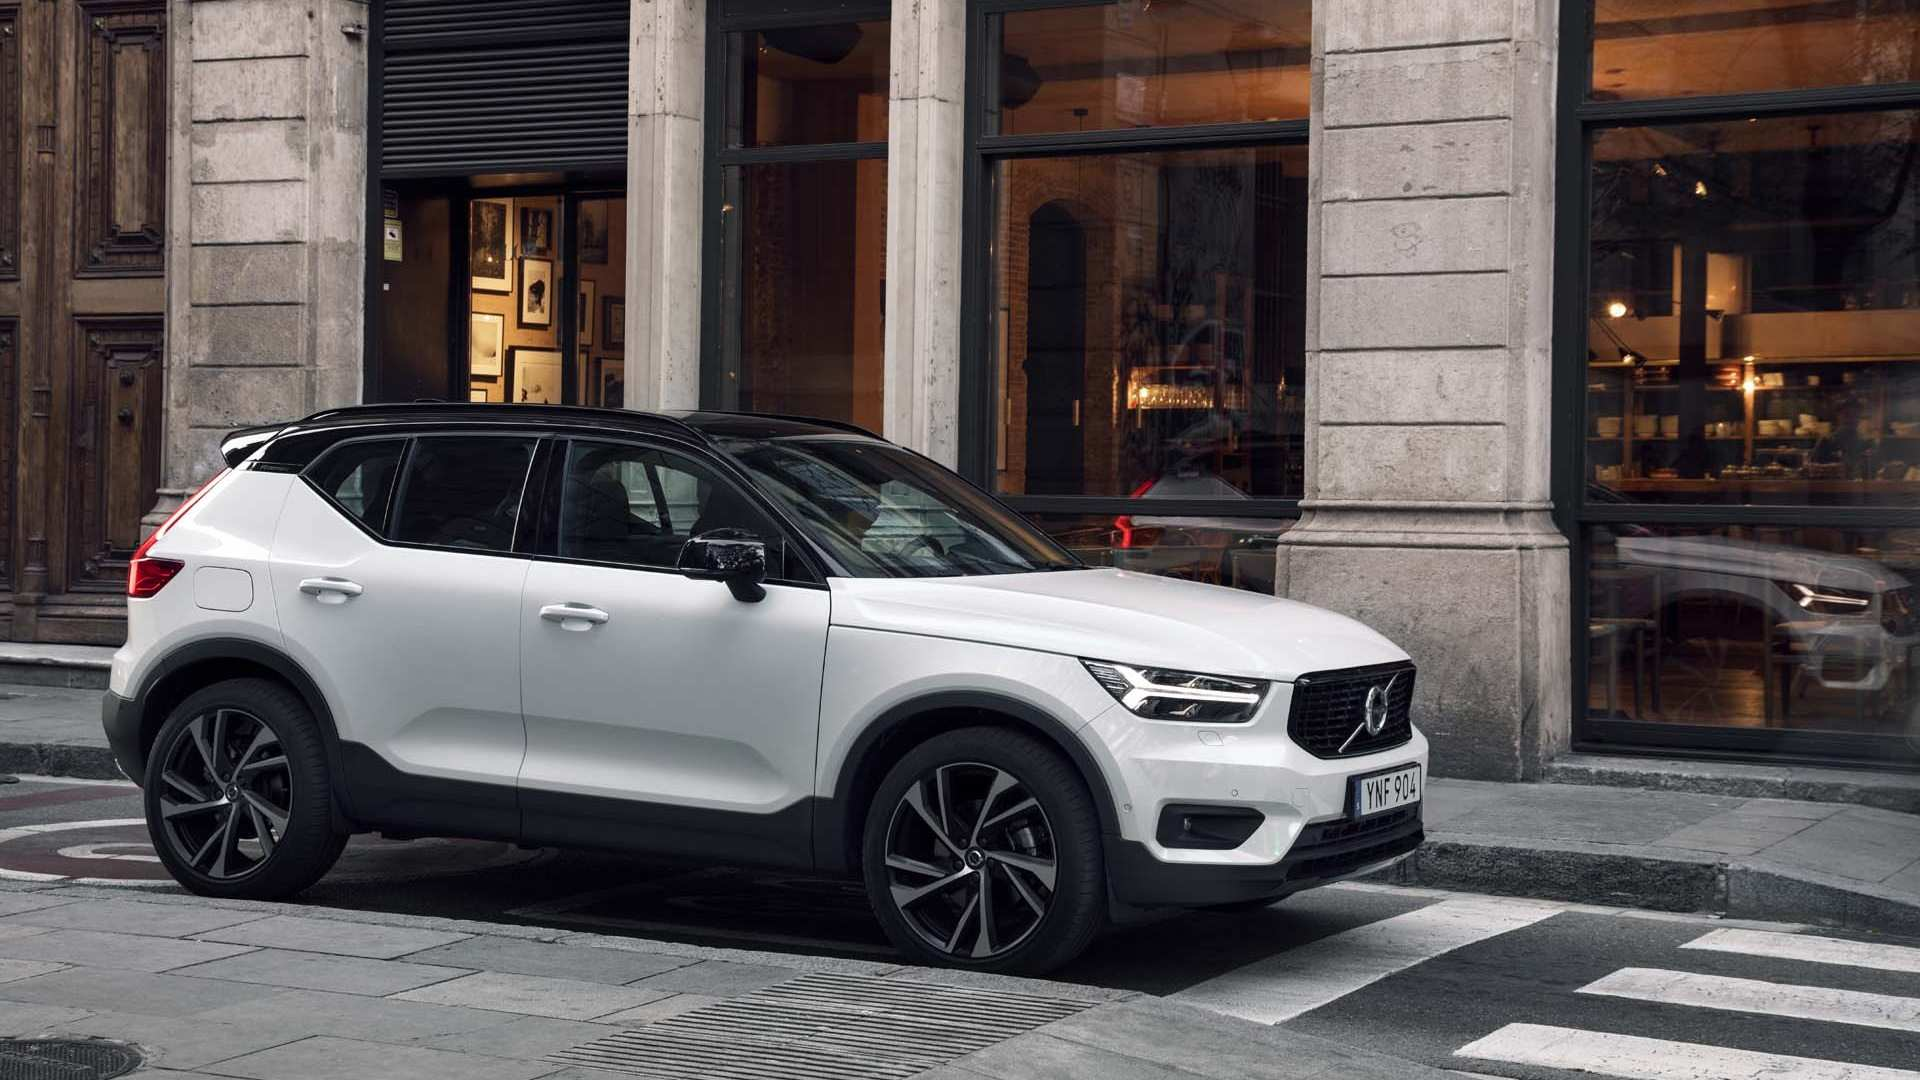 11 Gallery of 2019 Volvo Xc40 Mpg Images for 2019 Volvo Xc40 Mpg